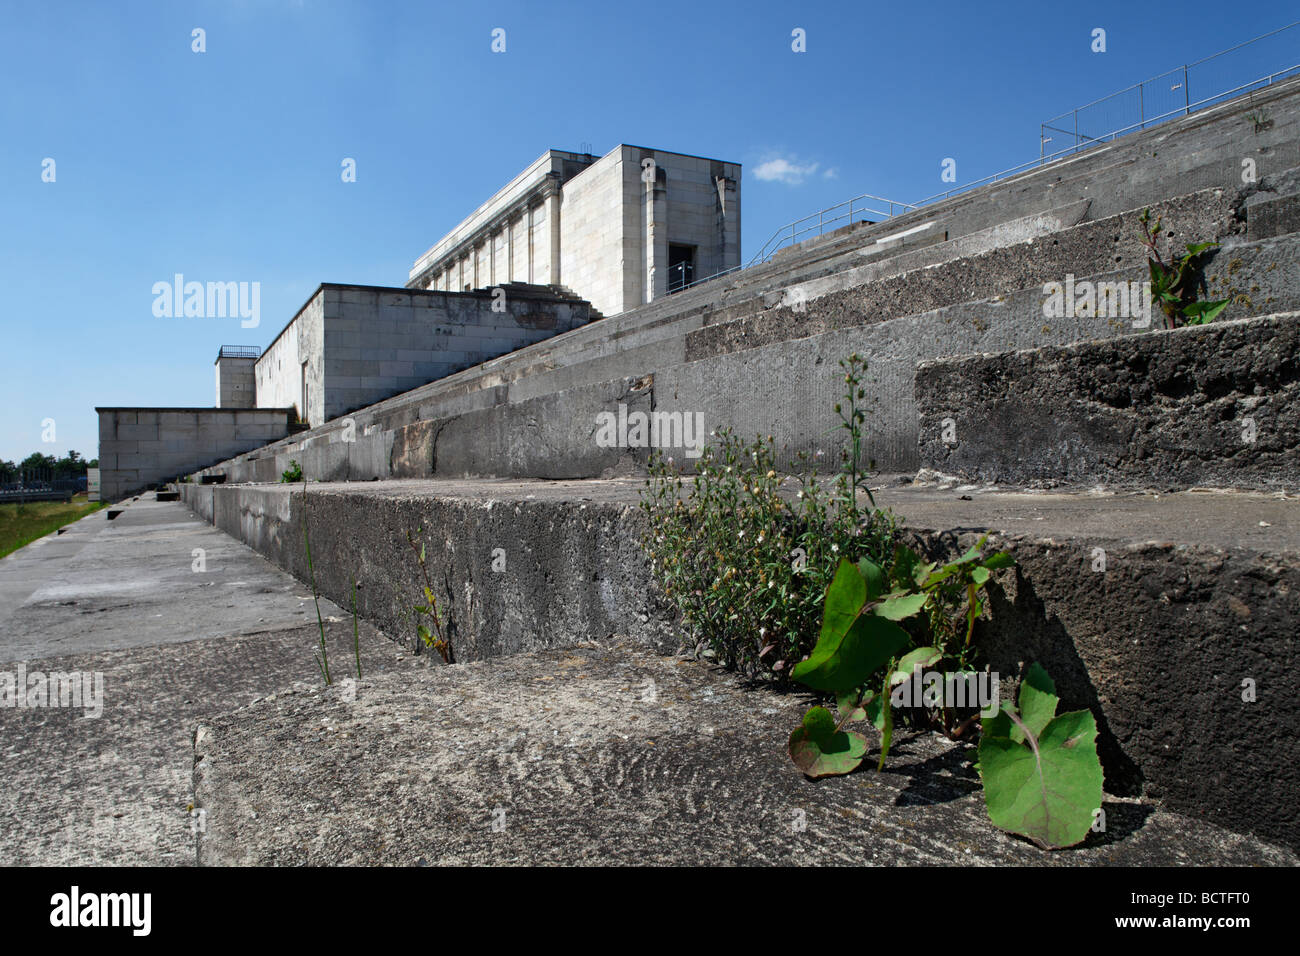 Plants growing on Adolf Hitler's tribune in front of the Zeppelinfeld field, Reichsparteitagsgelaende Nazi party - Stock Image